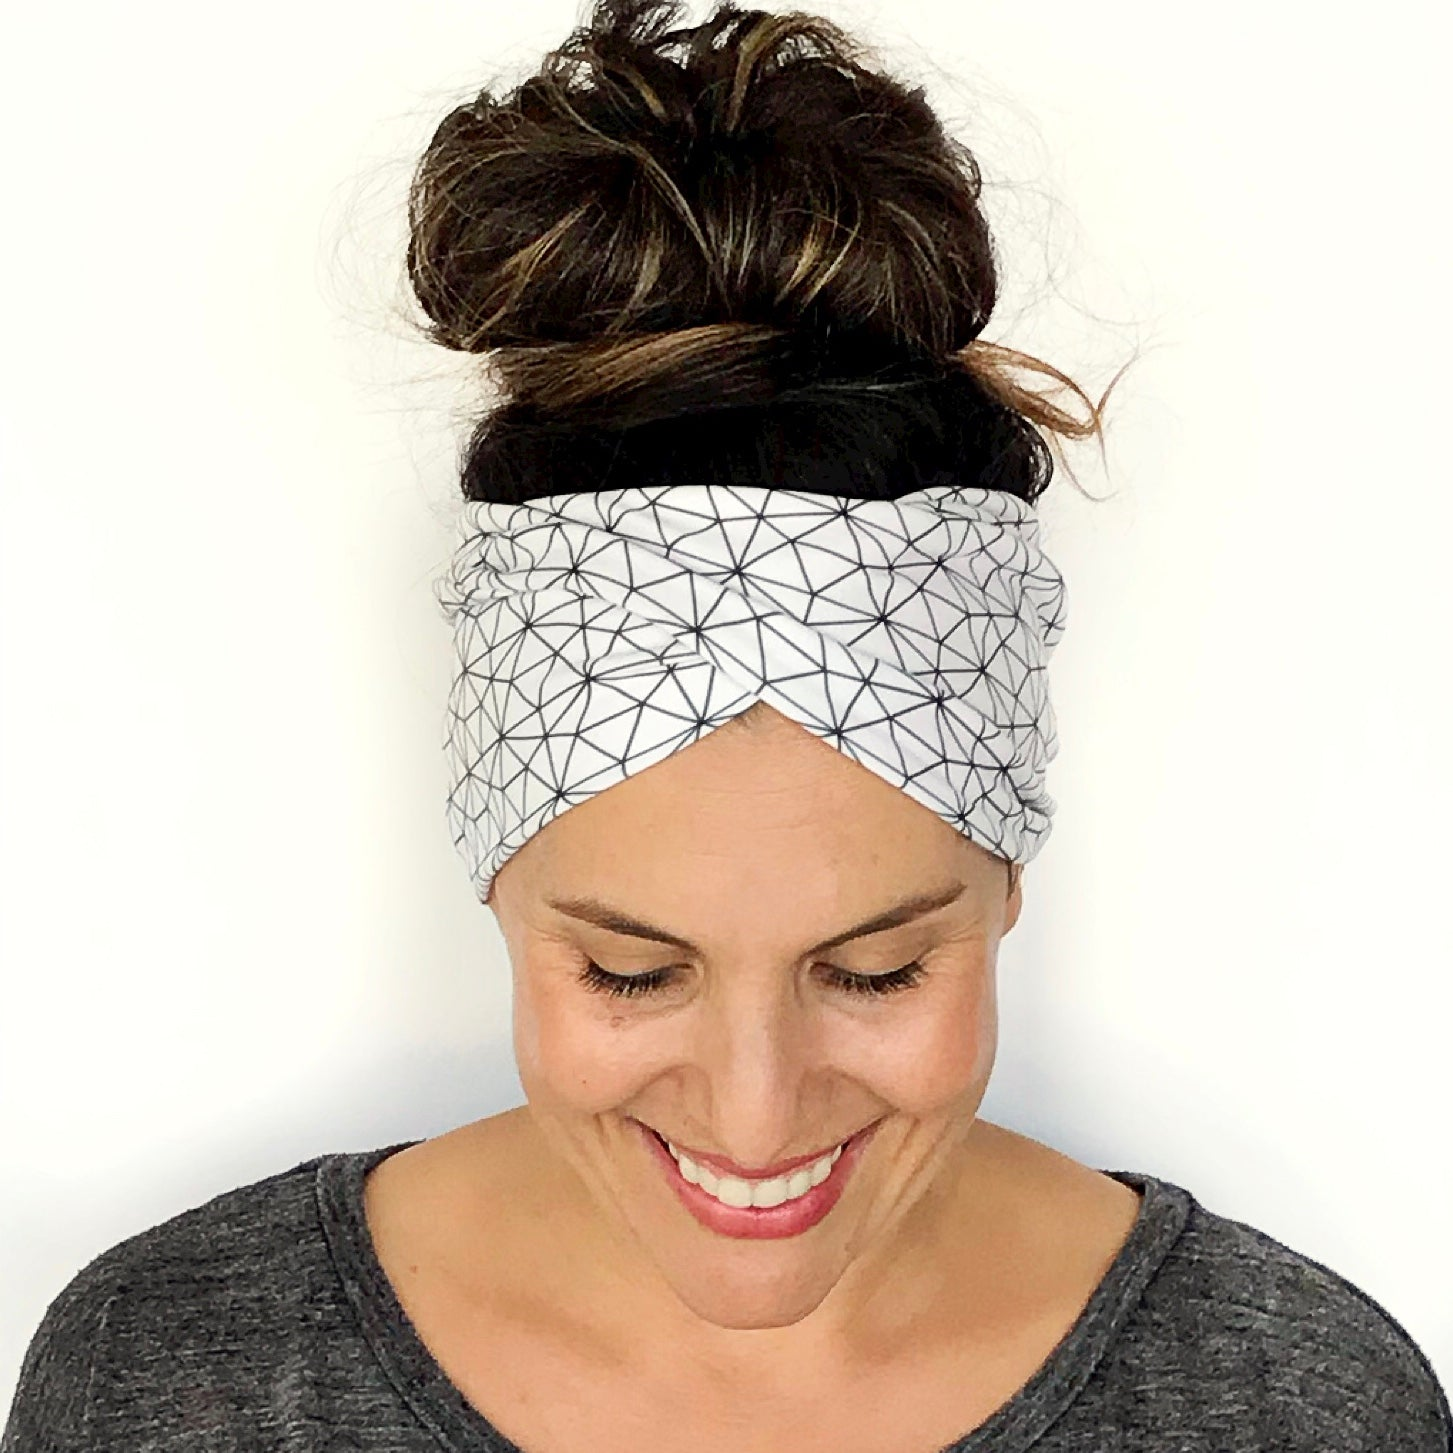 Metric Knotted Headband